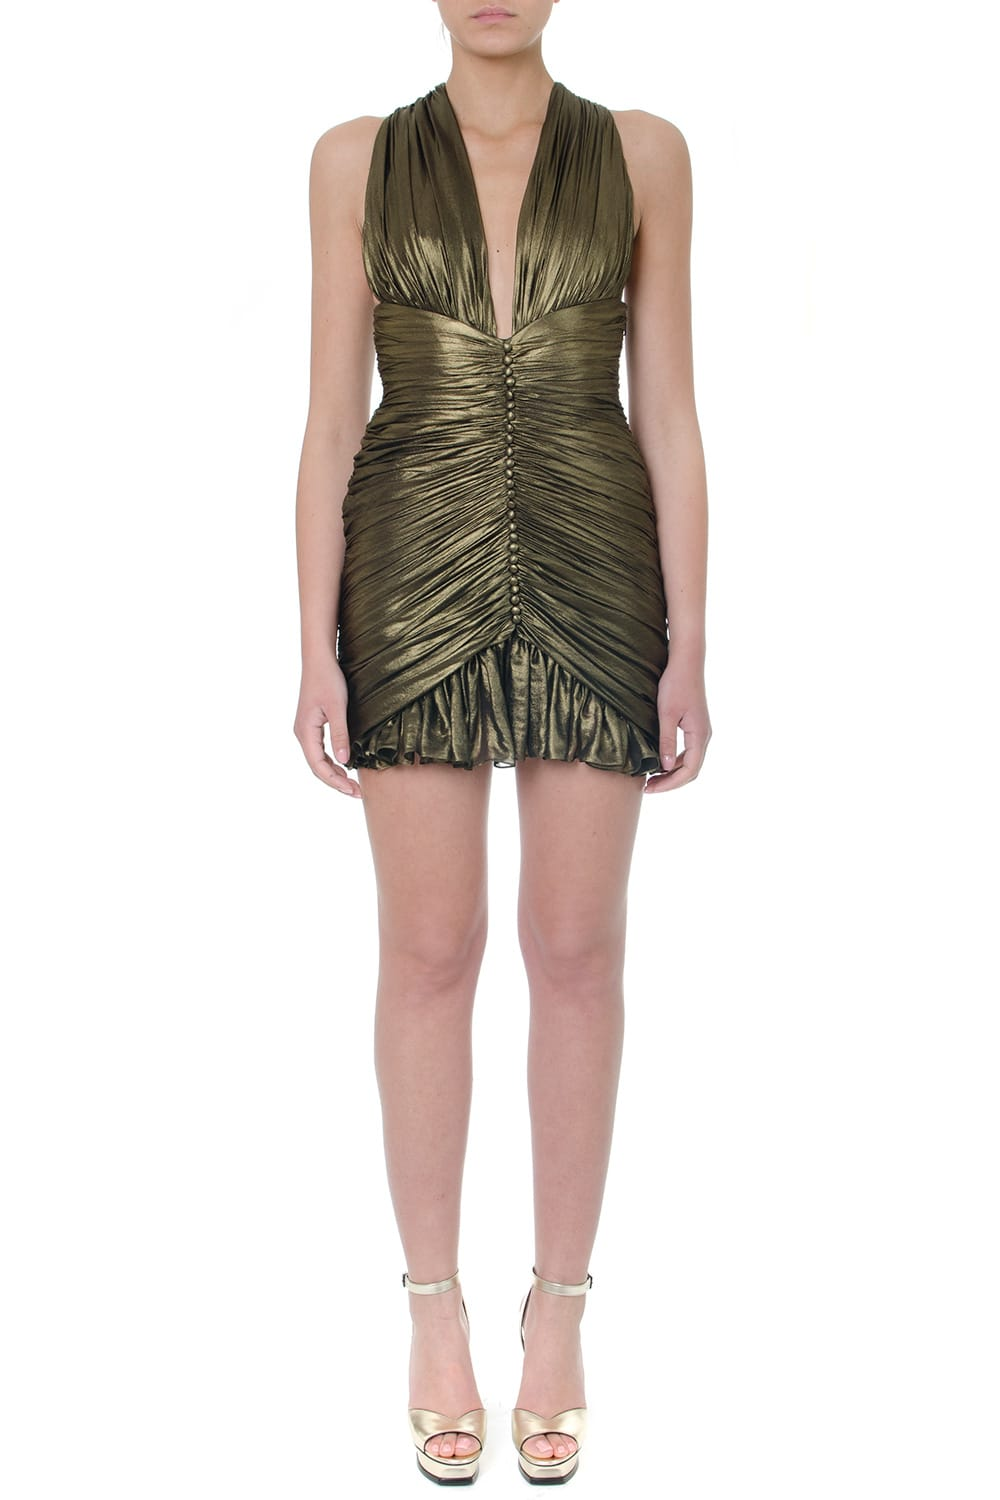 Saint Laurent Gold Gathered Dress In Crepe Chiffon